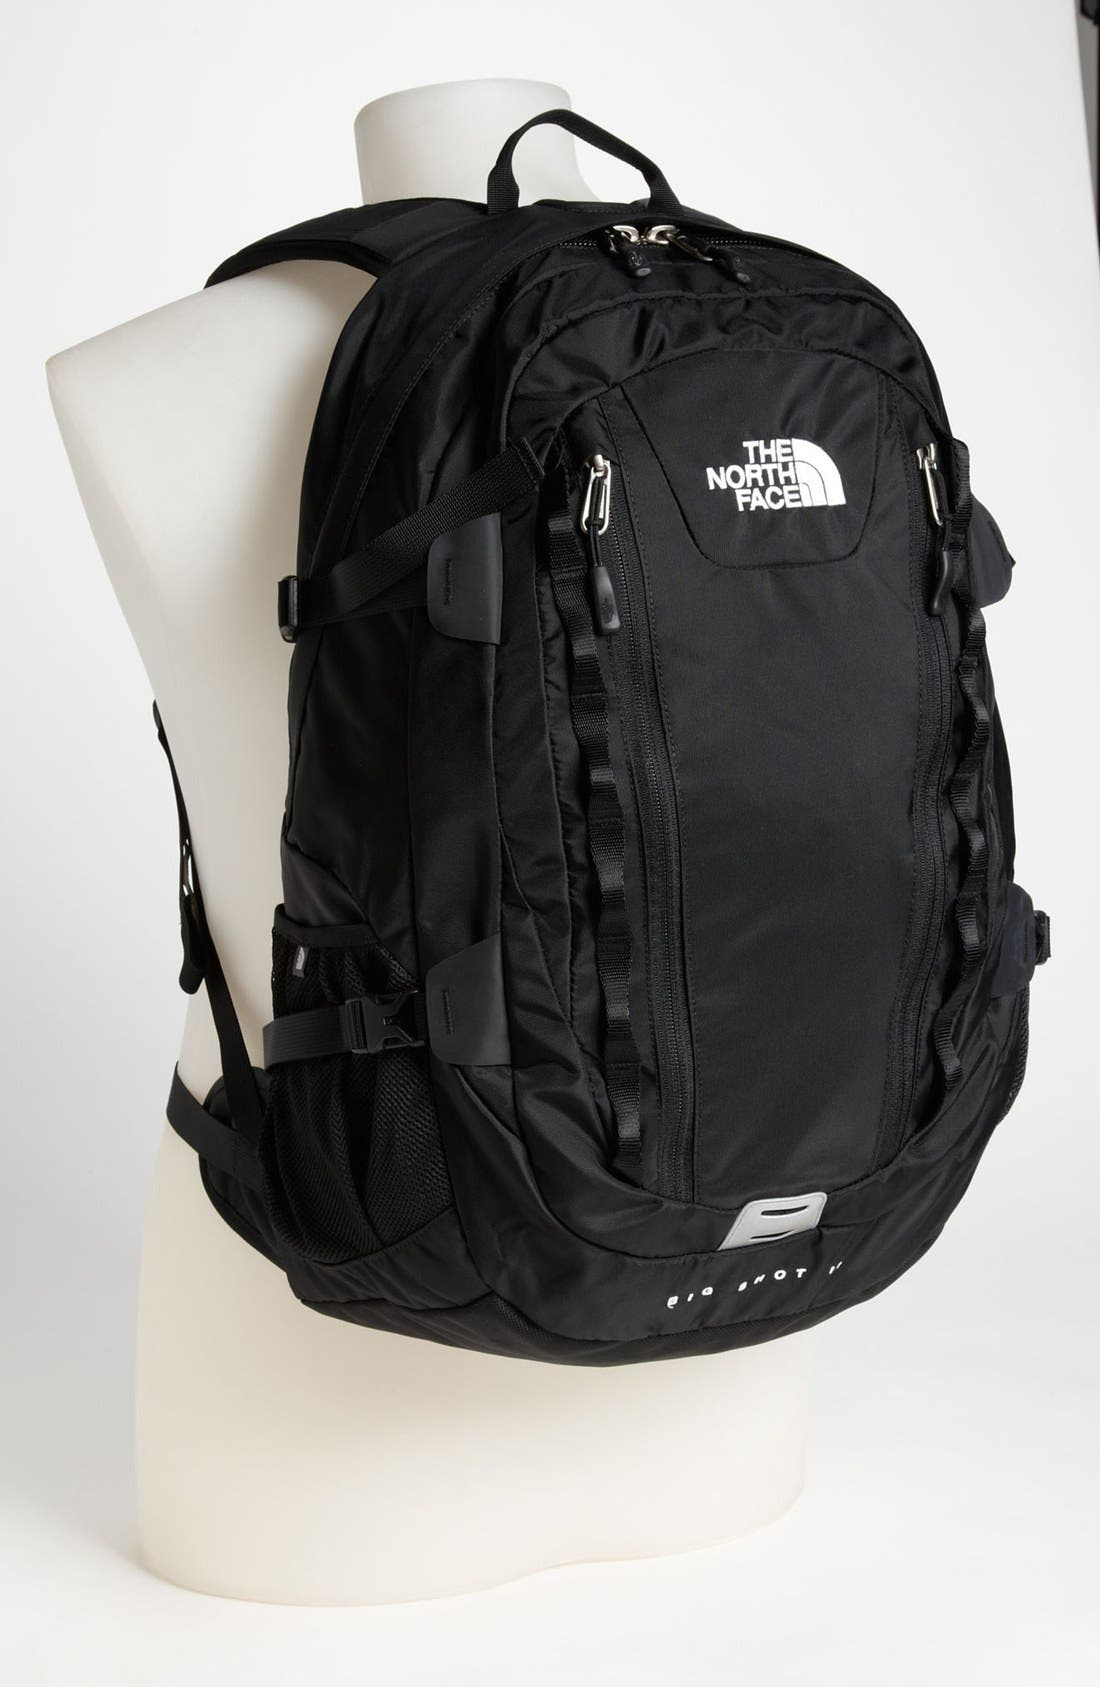 THE NORTH FACE,                             'Big Shot II' Backpack,                             Alternate thumbnail 2, color,                             001